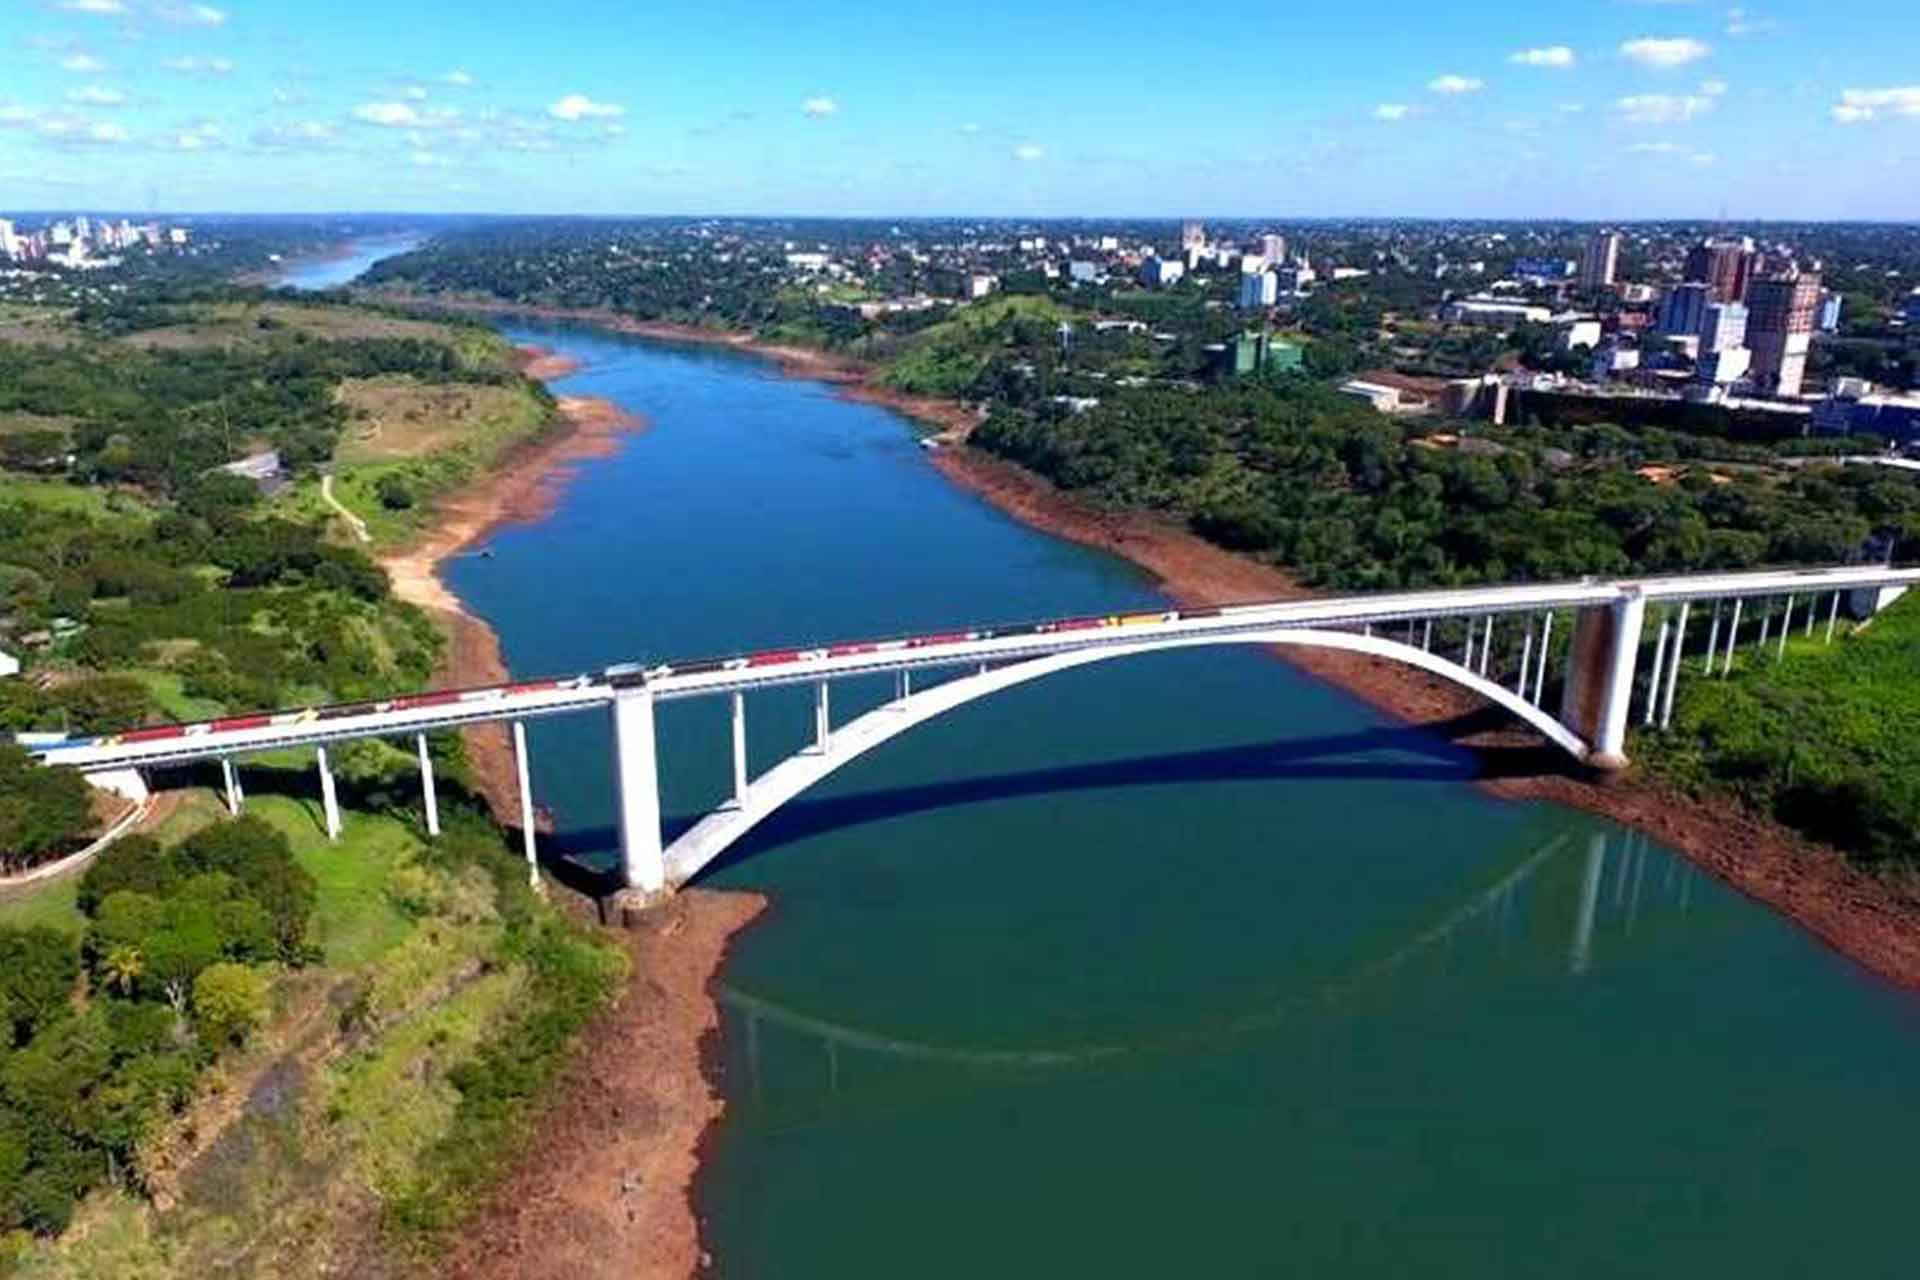 PARAGUAY: Reopens The Friendship Bridge